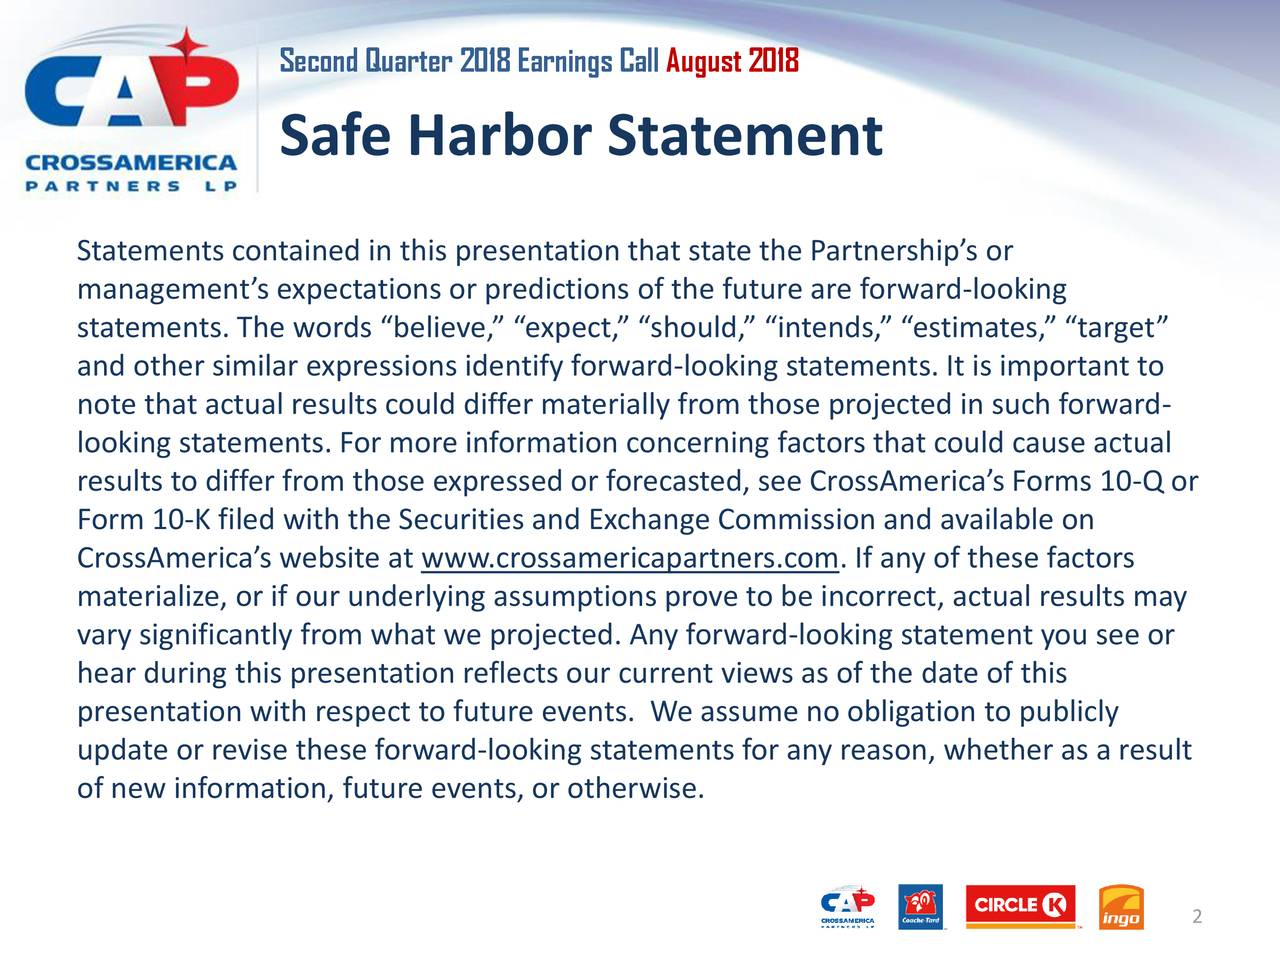 """Safe Harbor Statement Statements contained in this presentation that state the Partnership's or management's expectations or predictions of the future are forward-looking statements. The words """"believe,"""" """"expect,"""" """"should,"""" """"intends,"""" """"estimates,"""" """"target"""" and other similar expressions identify forward-looking statements. It is important to note that actual results could differ materially from those projected in such forward- looking statements. For more information concerning factors that could cause actual results to differ from those expressed or forecasted, see CrossAmerica's Forms 10-Q or Form 10-K filed with the Securities and Exchange Commission and available on CrossAmerica's website at www.crossamericapartners.com. If any of these factors materialize, or if our underlying assumptions prove to be incorrect, actual results may vary significantly from what we projected. Any forward-looking statement you see or hear during this presentation reflects our current views as of the date of this presentation with respect to future events. We assume no obligation to publicly update or revise these forward-looking statements for any reason, whether as a result of new information, future events, or otherwise. 2"""